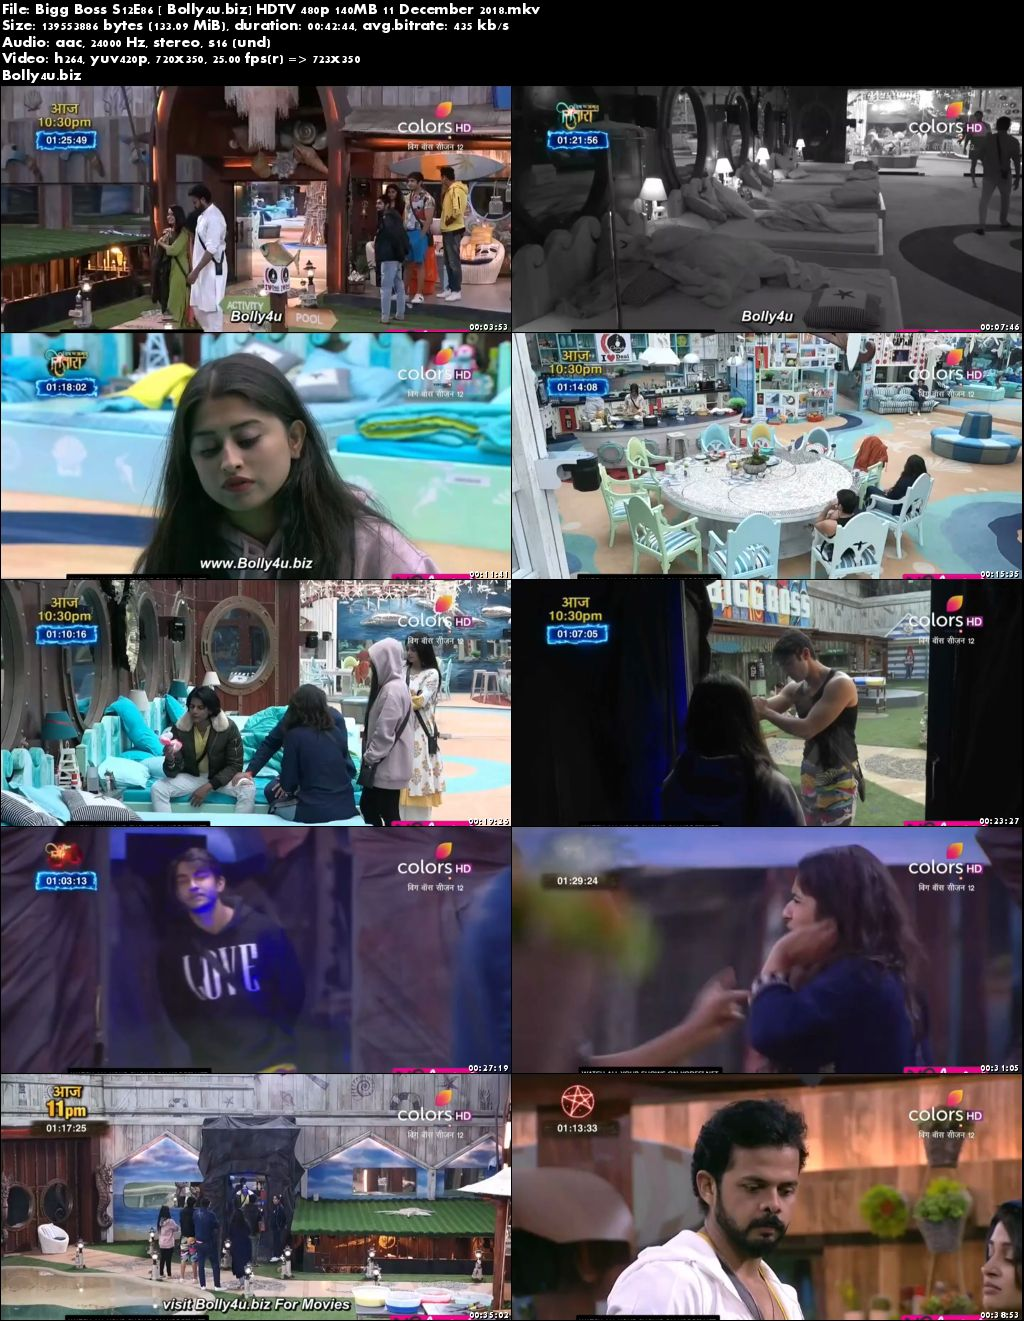 Bigg Boss S12E86 HDTV 480p 140MB 11 December 2018 Download